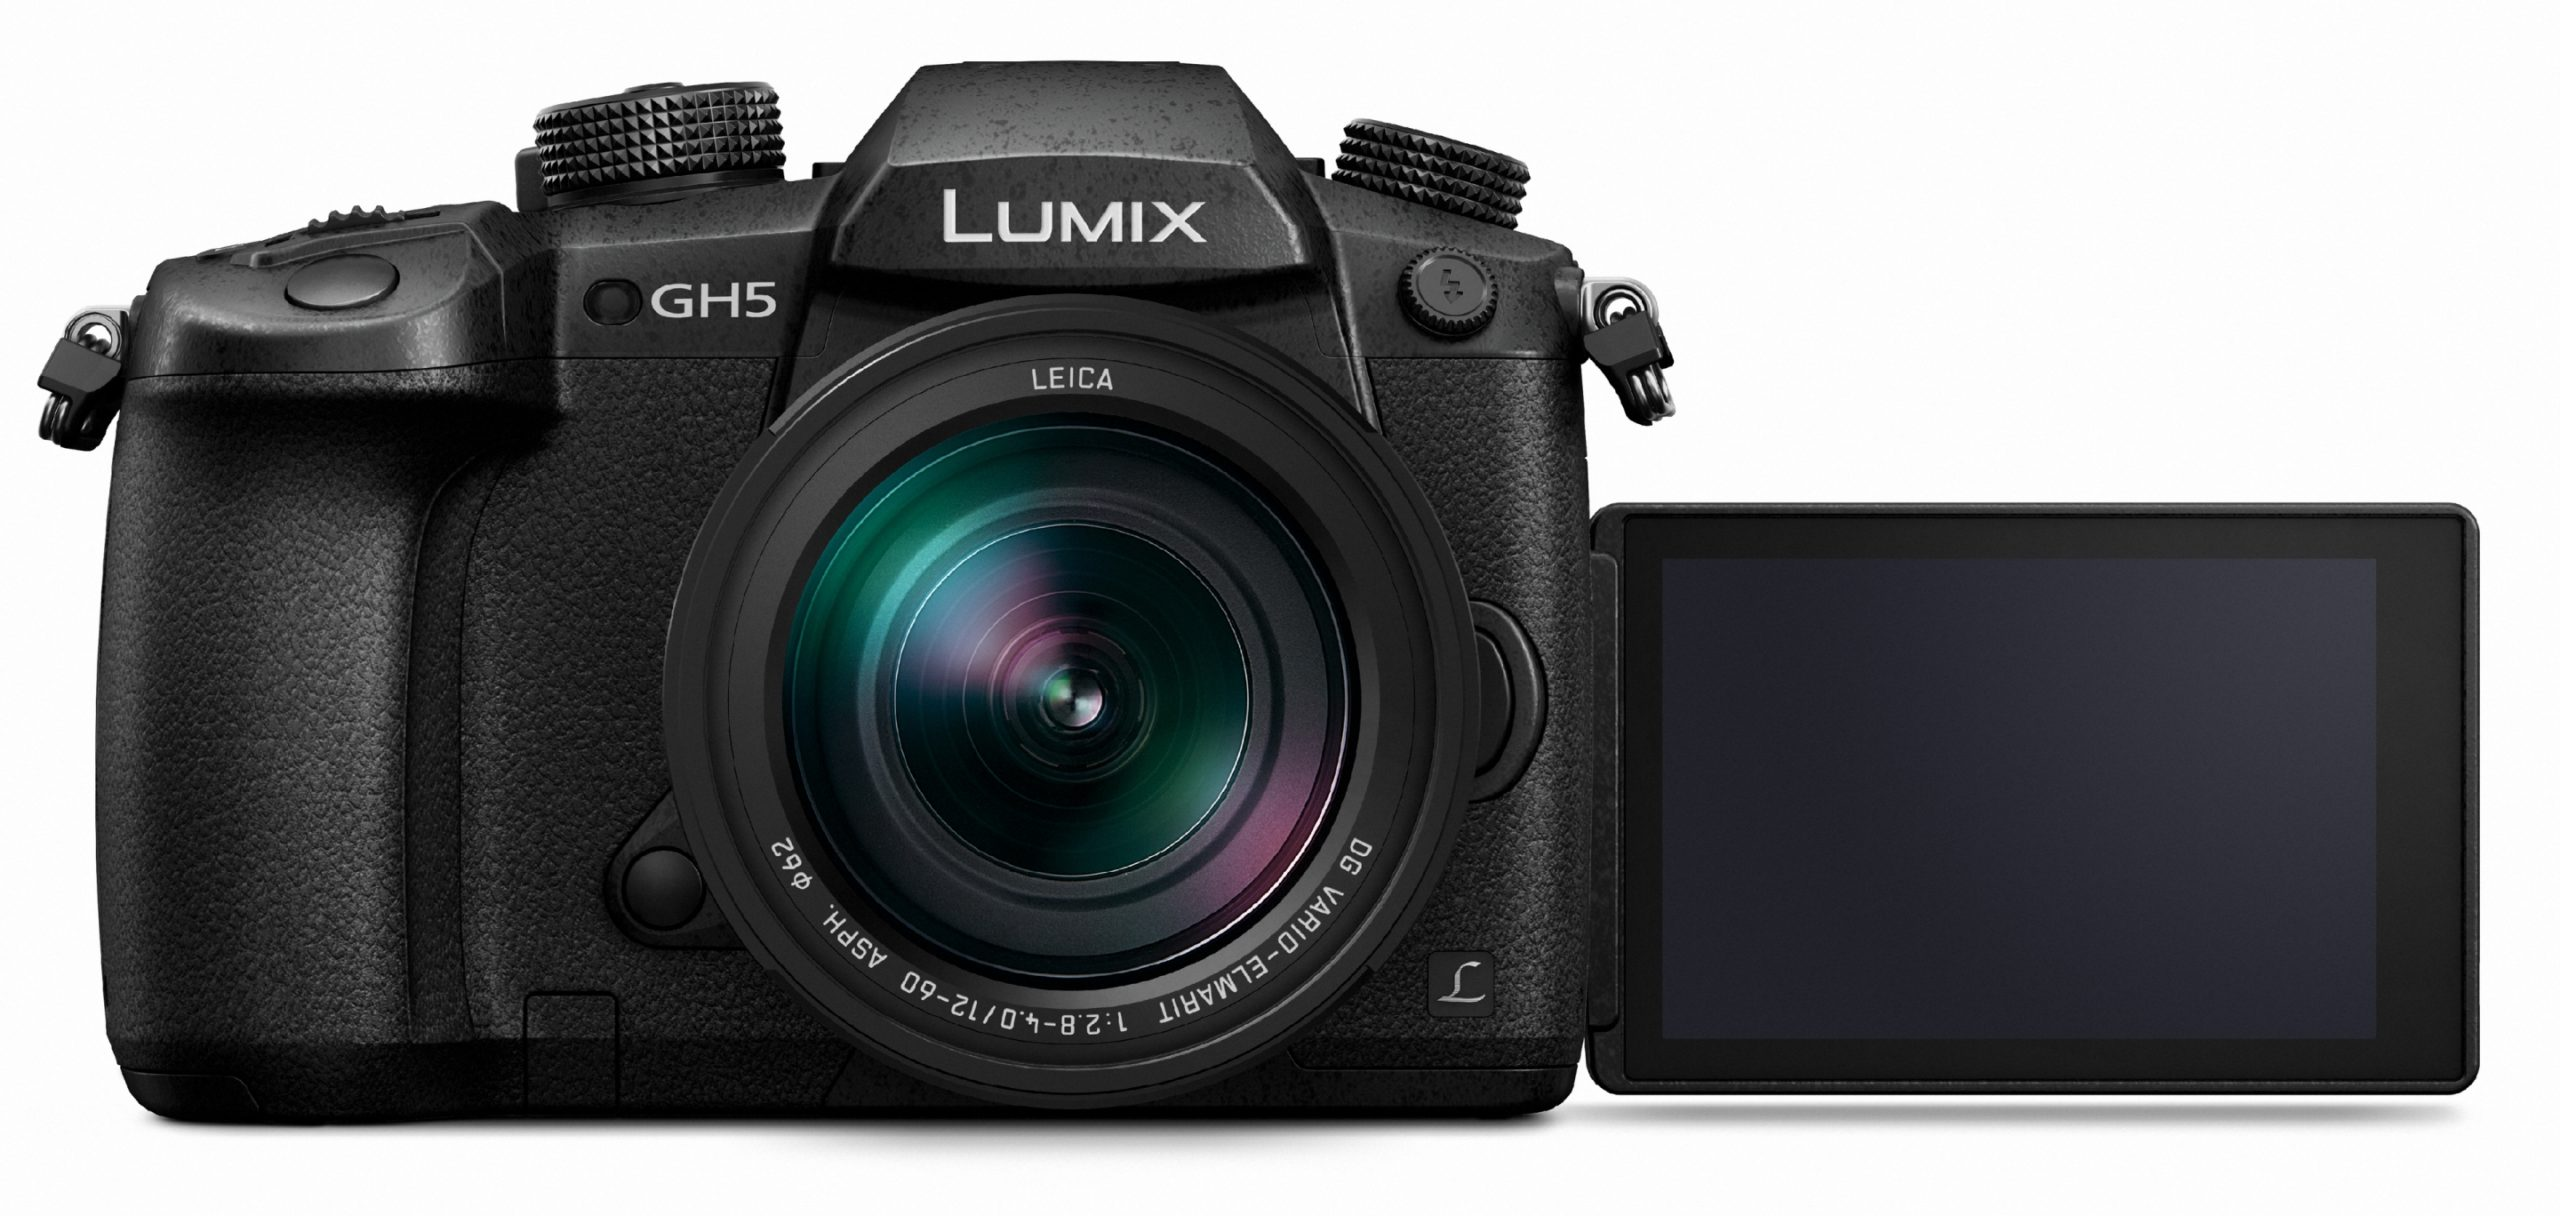 CES Panasonic Lumix GH5 Front view